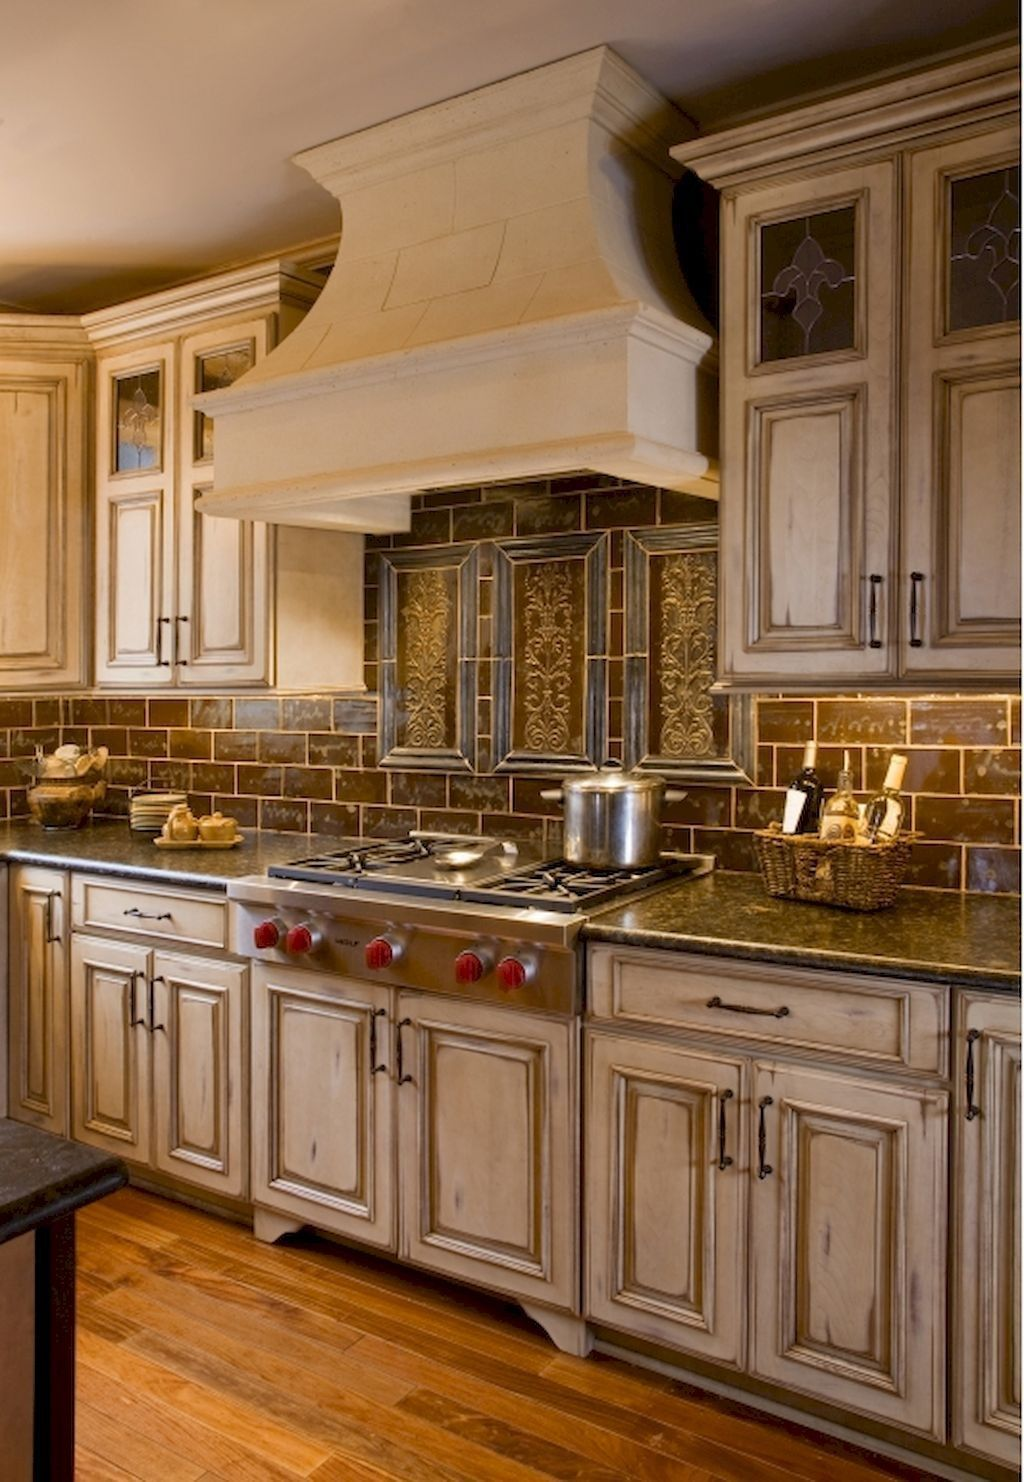 53 Simple Stylish Elegant Kitchen Decorating Ideas for Your New Home | Country kitchen designs ...